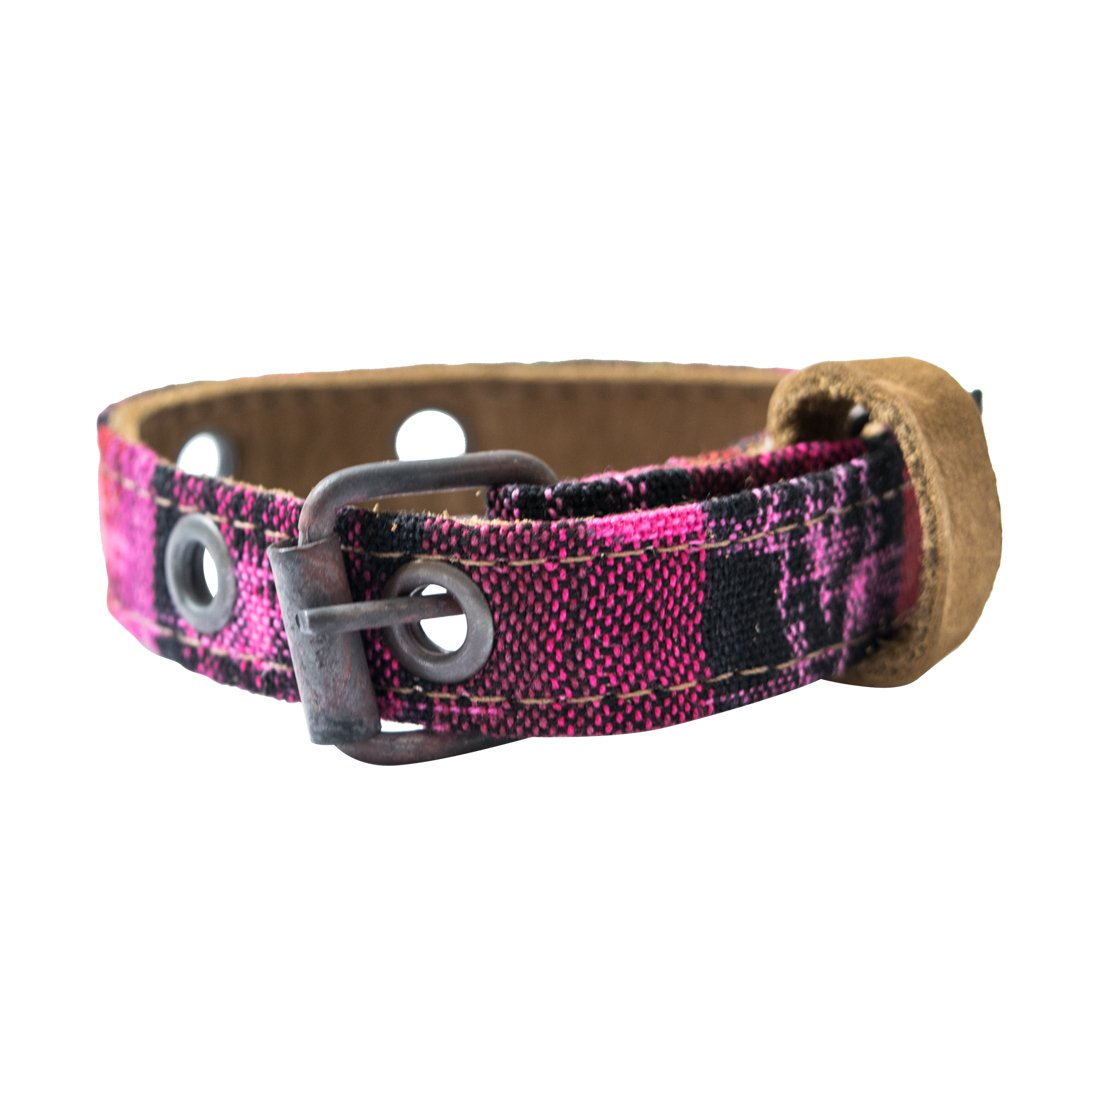 Mayan Pet Collar for Cats & Small Size Dogs (8.25-12.25 inches) Handmade by Hide & Drink    Tropical Fuchsia